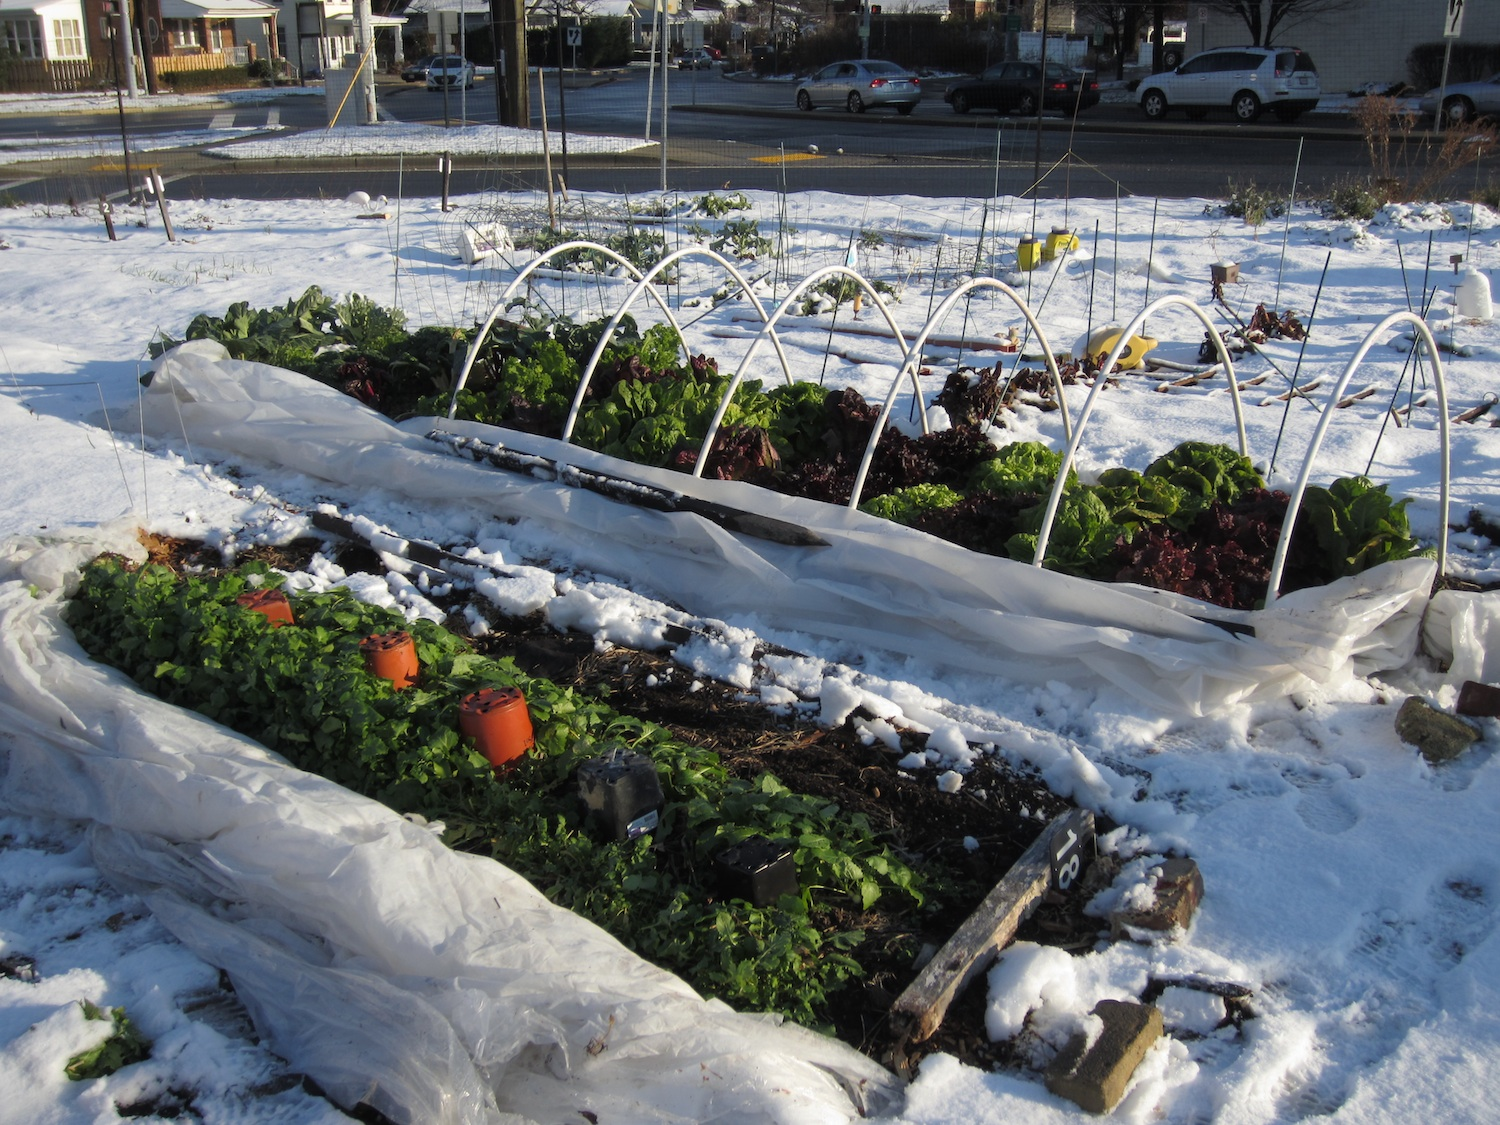 winter gardening tips best winter crops and coldhardy varieties, Natural flower